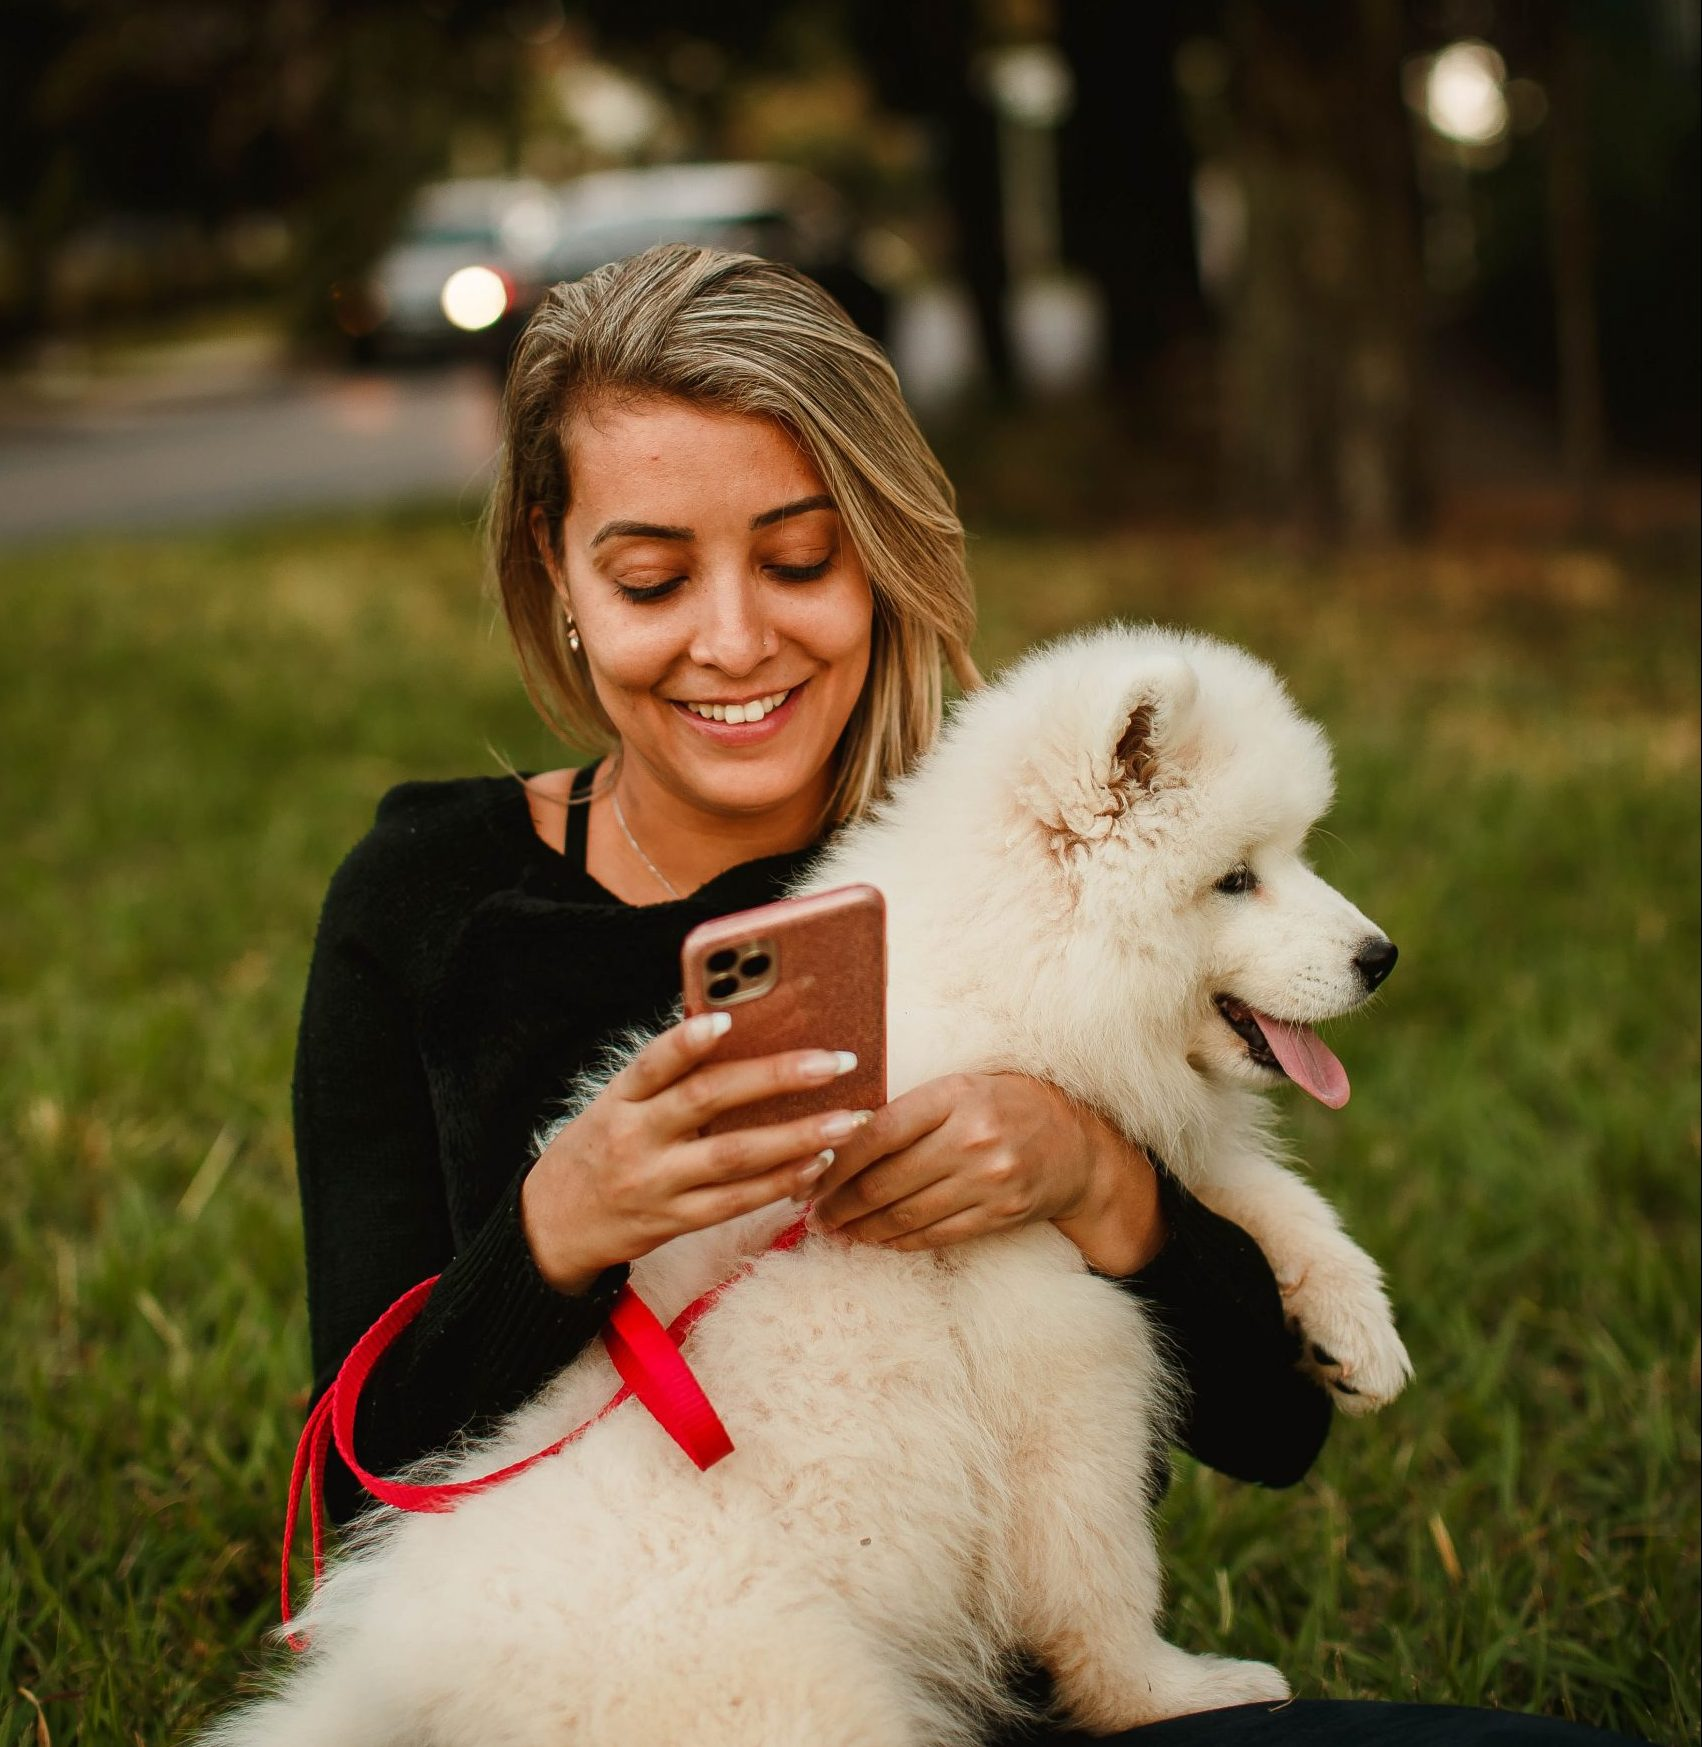 Woman on phone with fluffy dog